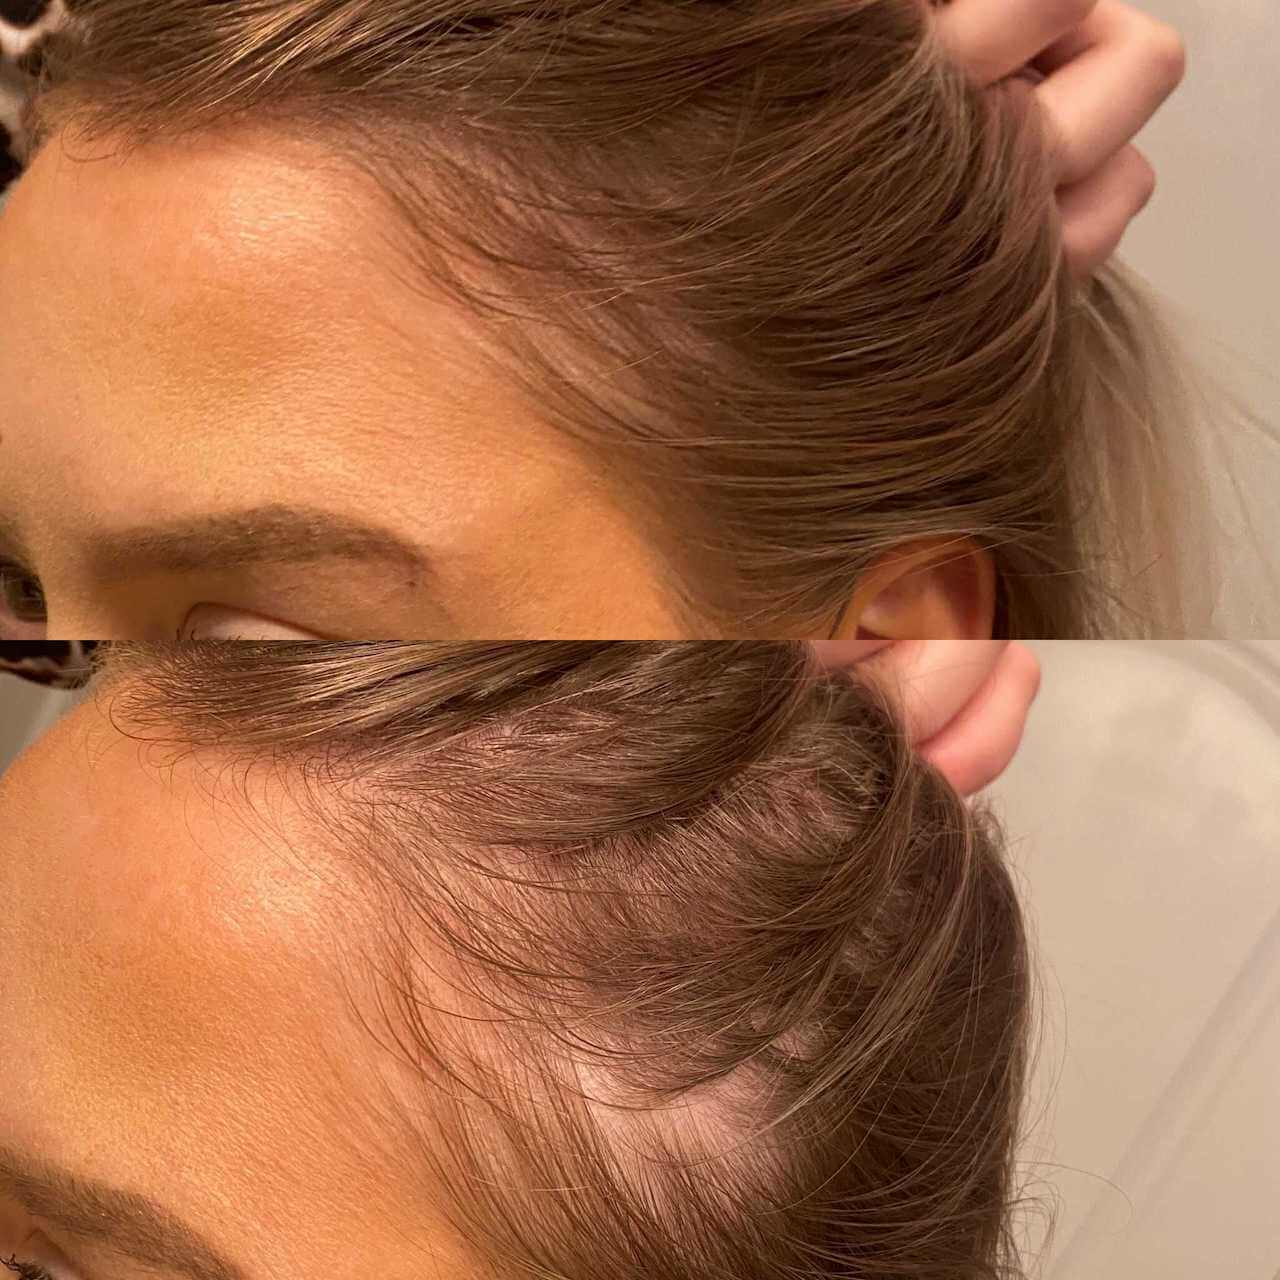 VEGAMOUR GRO Hair Serum Before and After